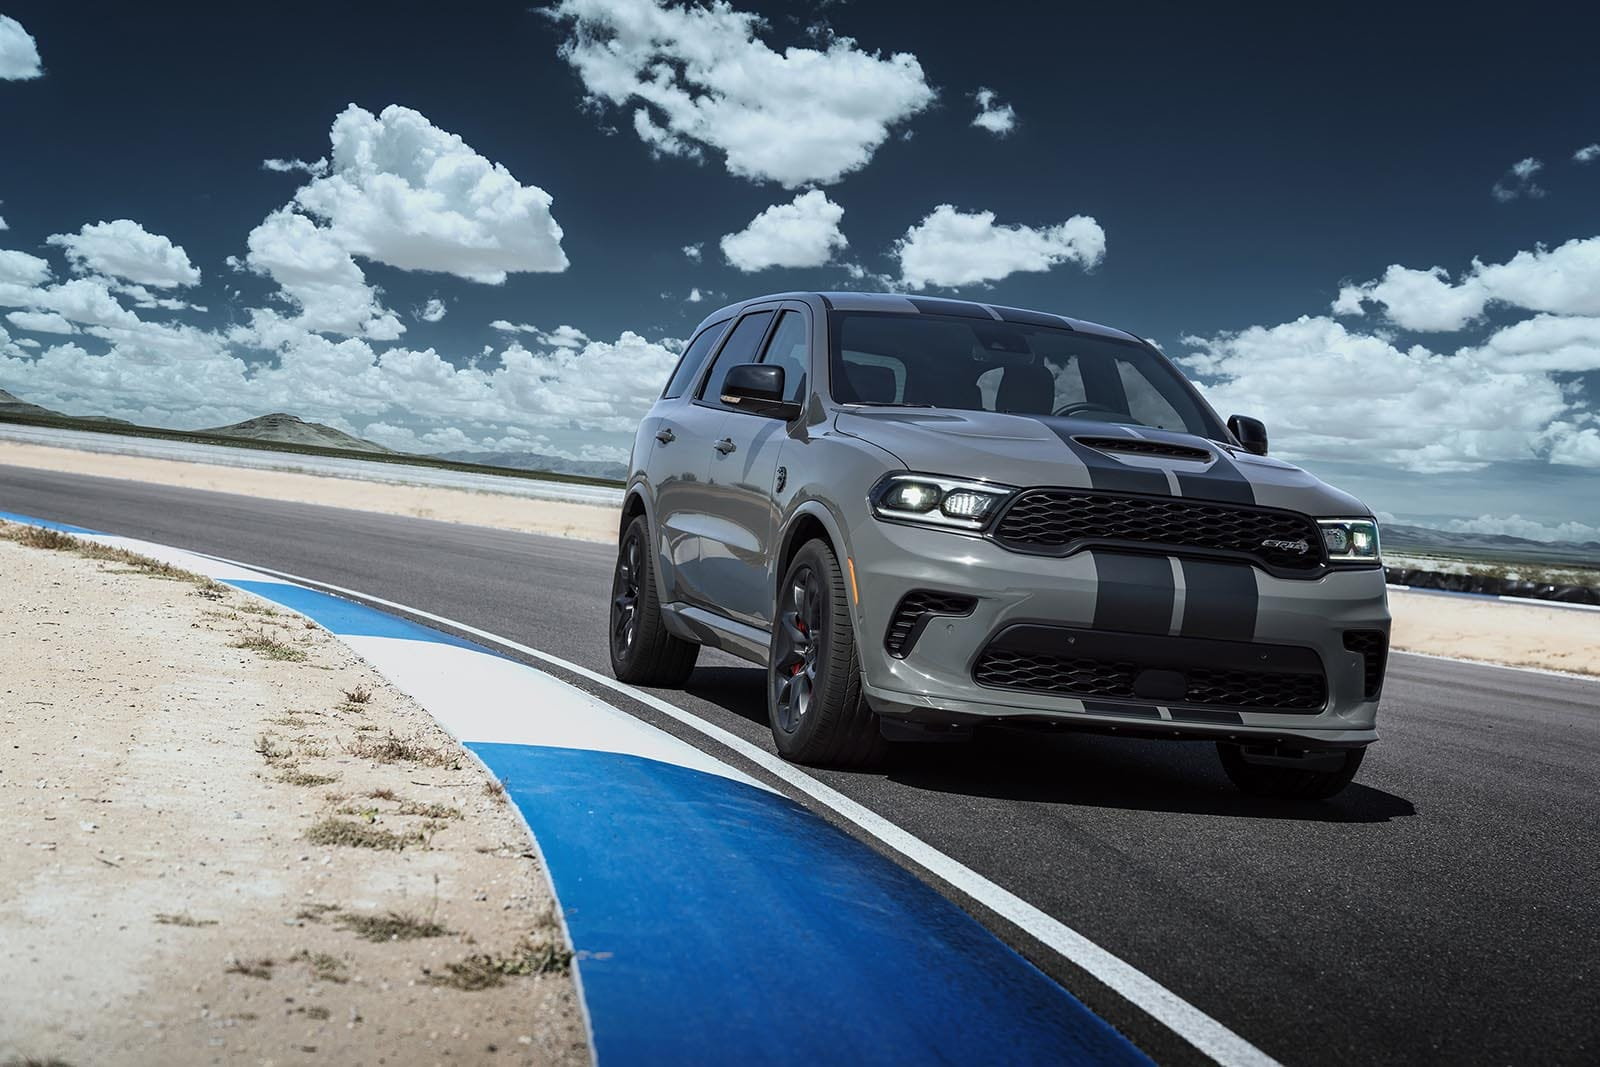 New Dodge Durango Hellcat Comes With 80k Price Tag The Detroit Bureau